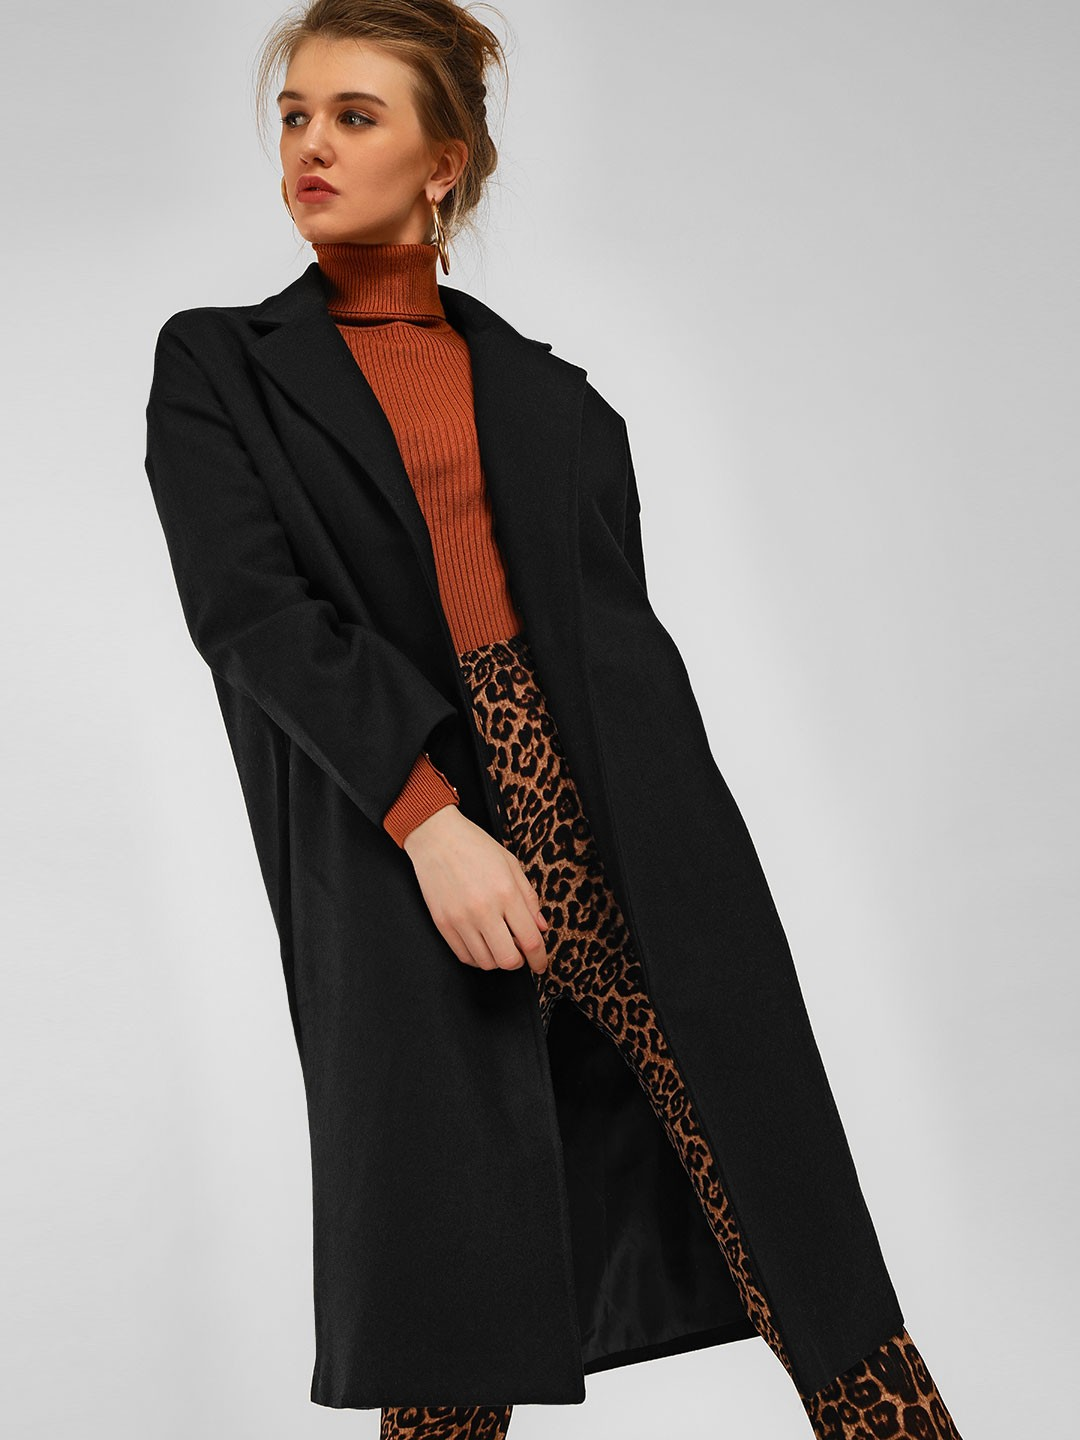 Origami Lily Black Single Breasted Longline Overcoat 1